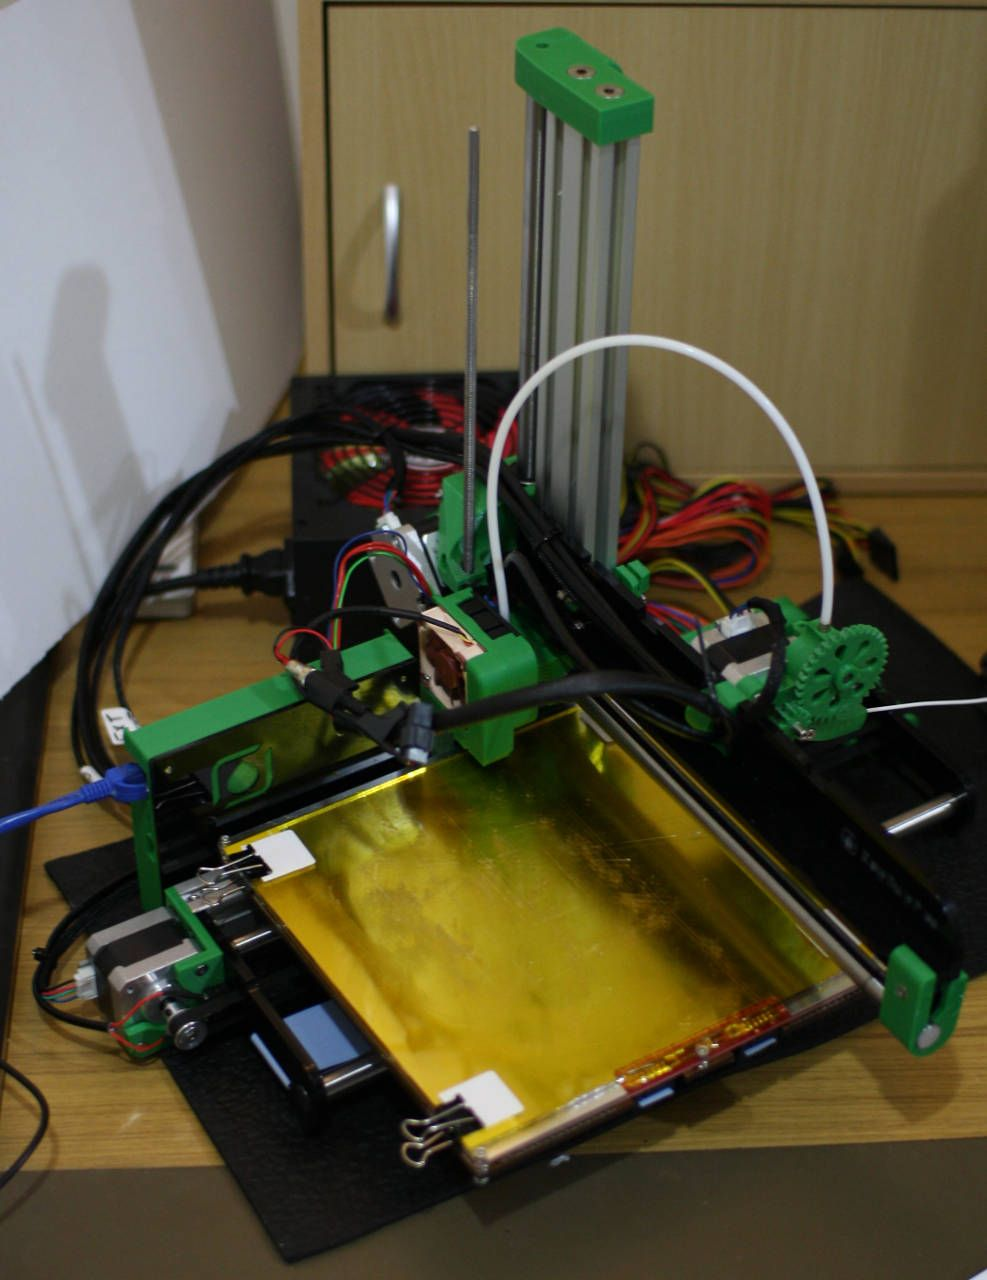 How To Build And Tune An Open Source 3d Printer On Linux The Make A Printed Circuit Board Using Diode Laser With Reprappro Ormerod Is Recent Addition Reprap Line Of Printers That Uses